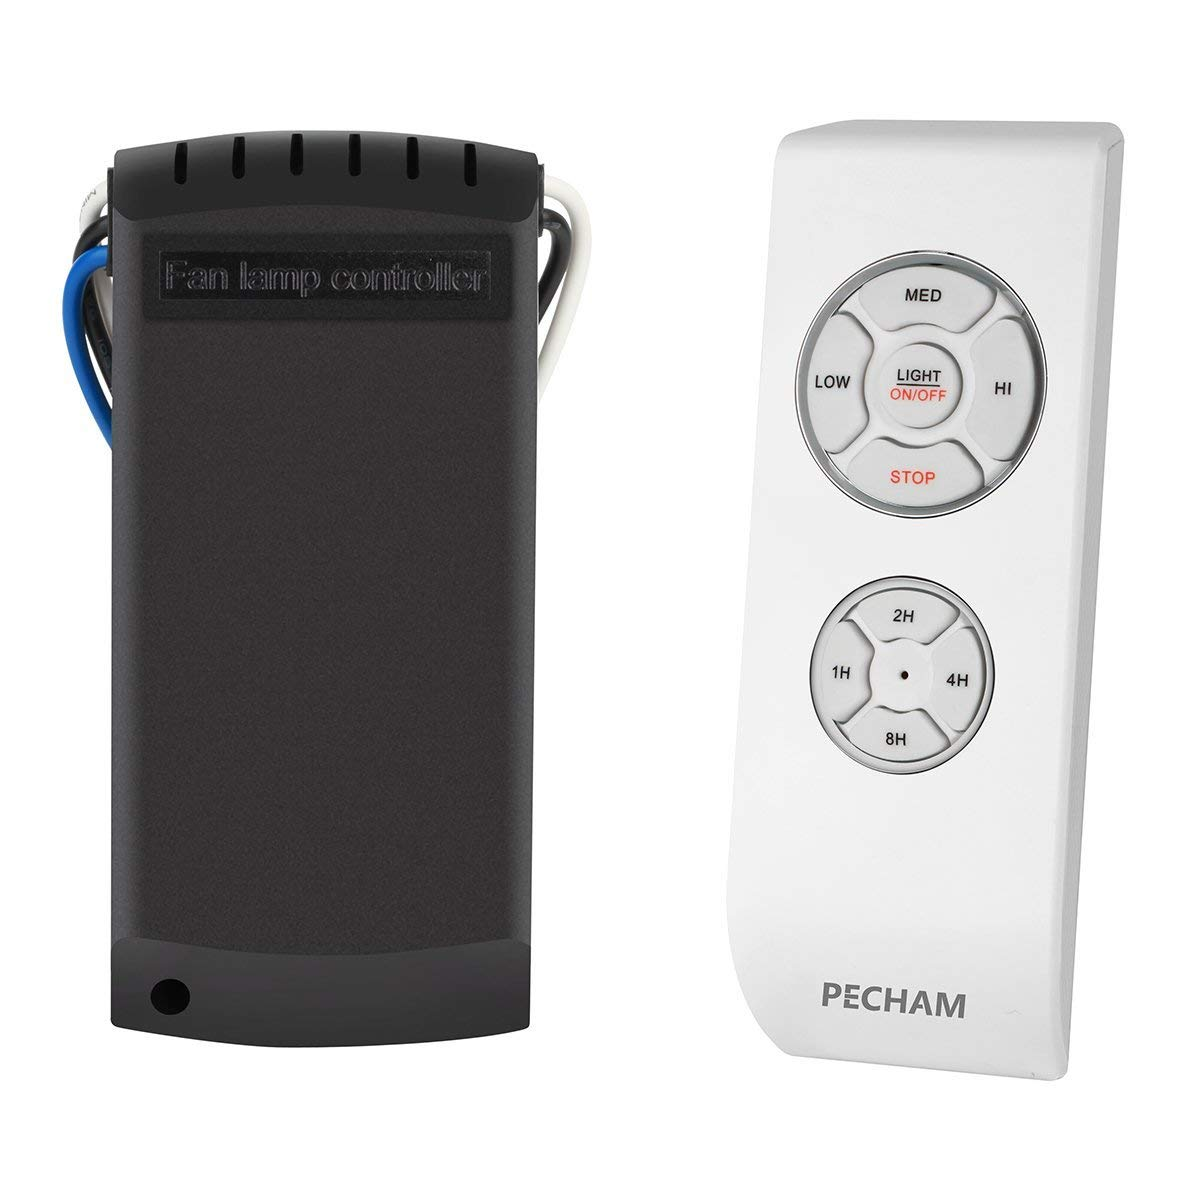 PECHAM Universal Lamp Kit & Timing Wireless Remote Control for Ceiling Fan, Scope of Application [Home/Office/Hotel/The Club/Display Hall/Restaurant] by PECHAM